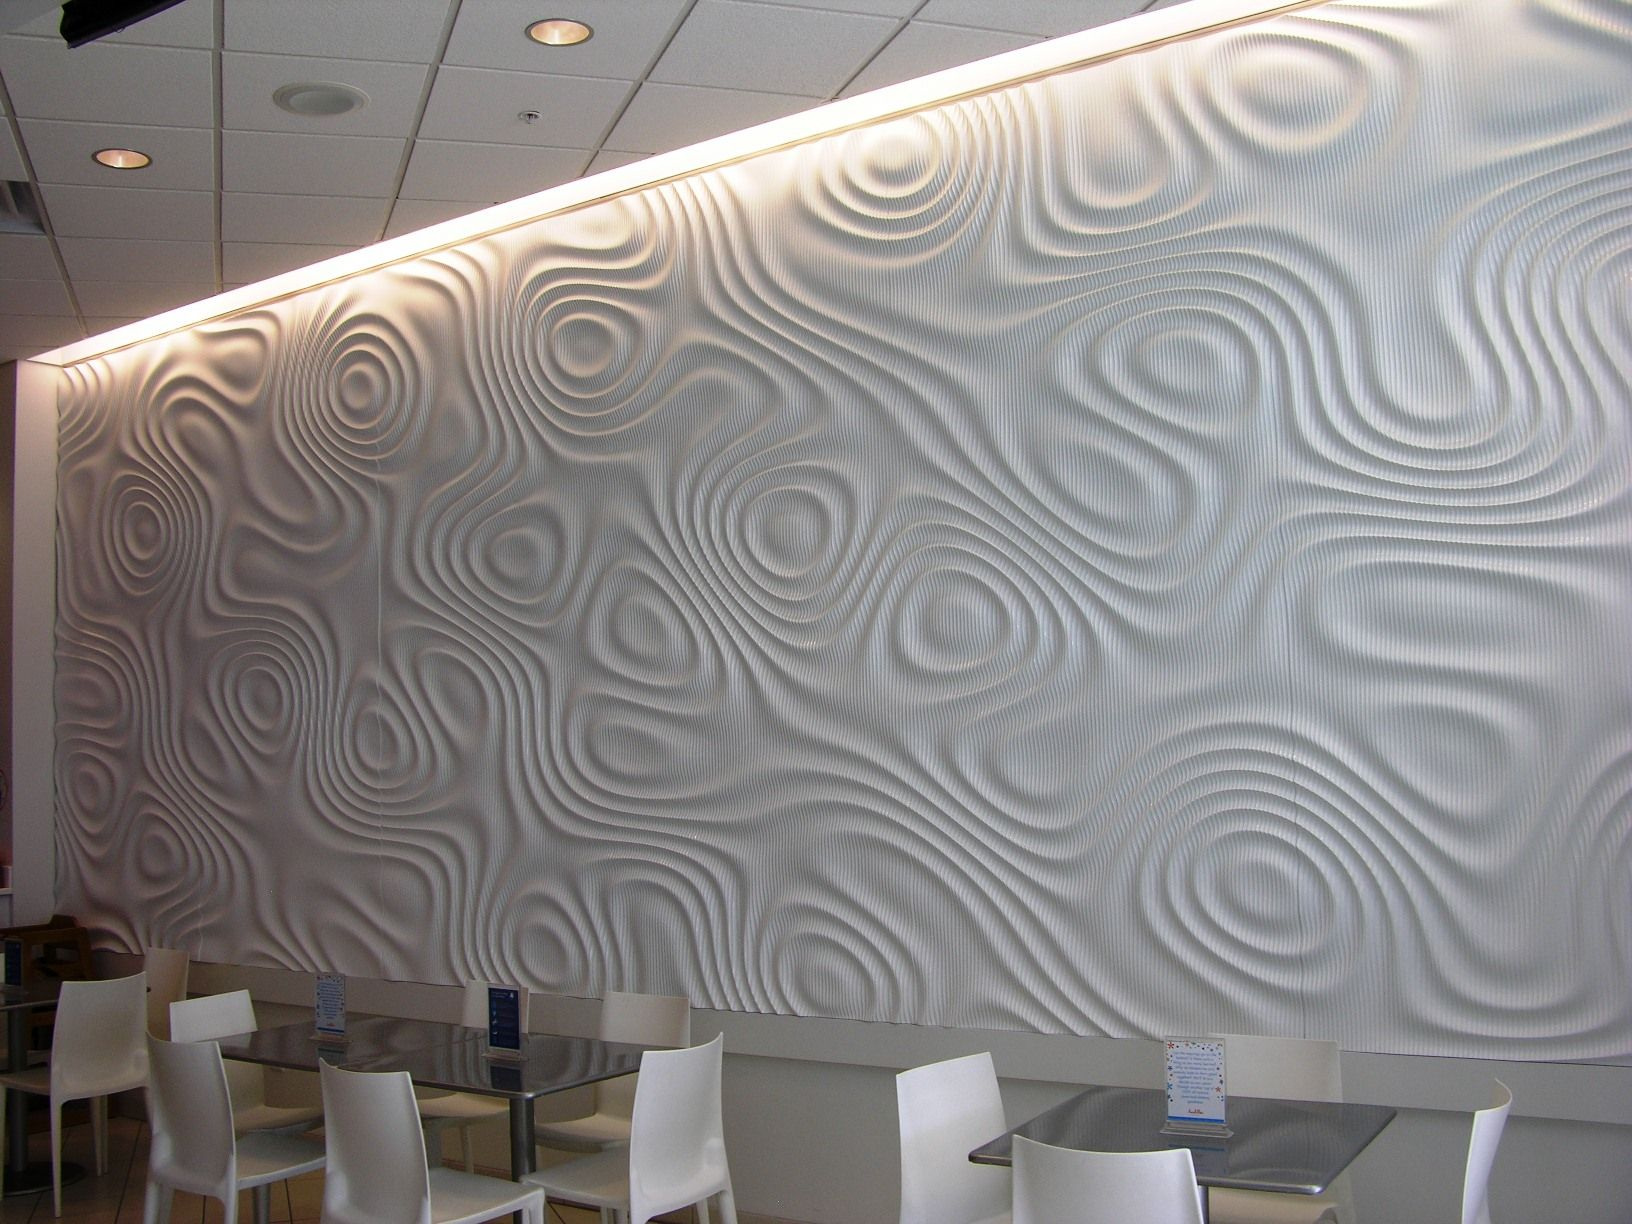 Interlam   MDF   Wavy Wall Panels   3d Wall Panels   Decorative Wall Panels